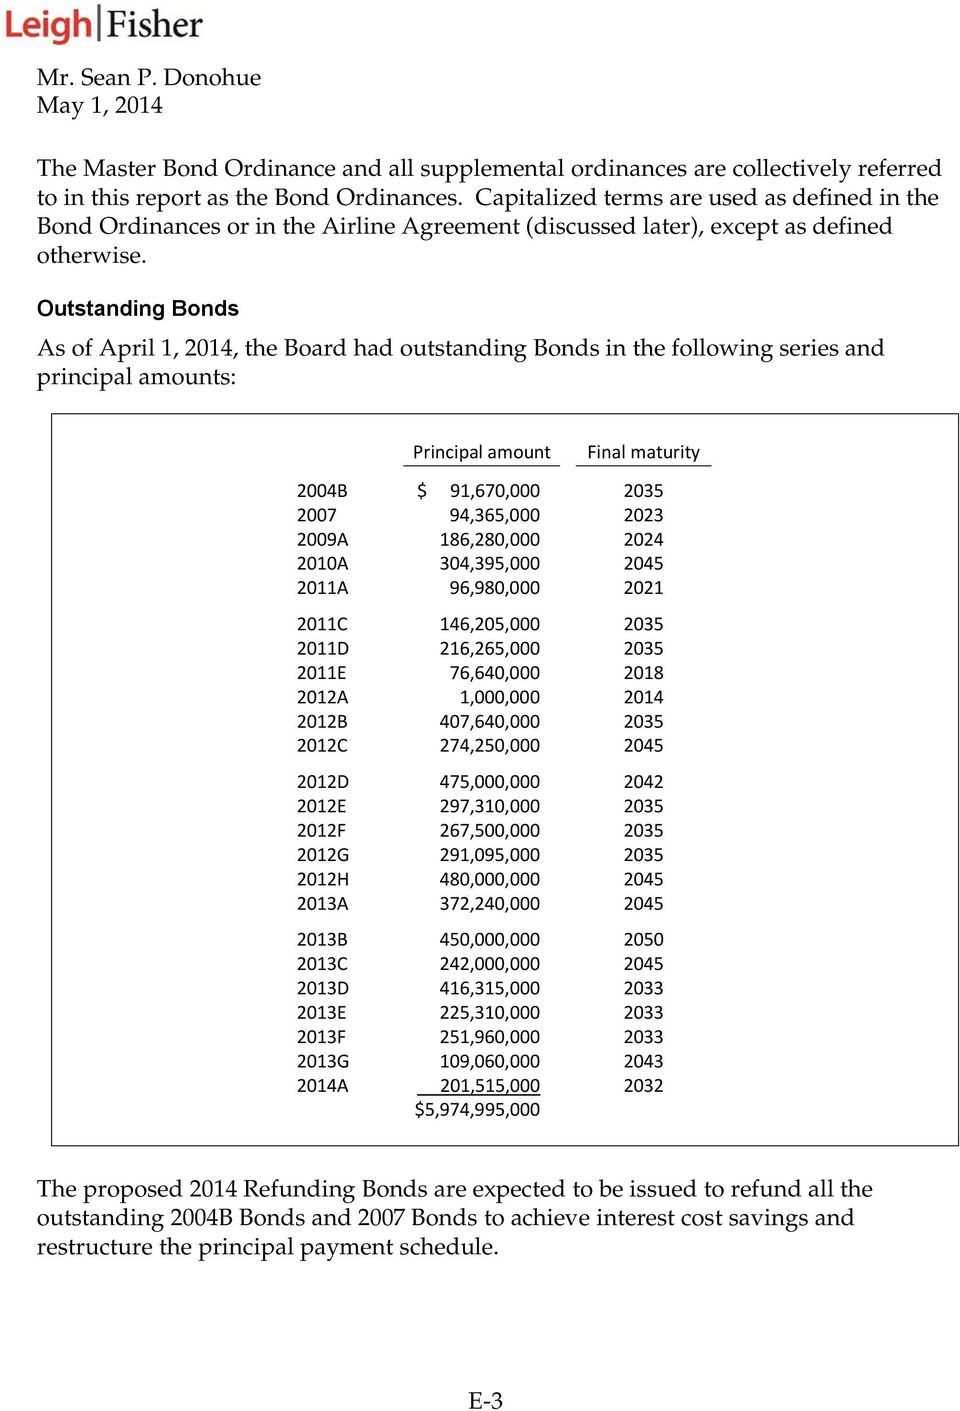 Outstanding Bonds As of April 1, 2014, the Board had outstanding Bonds in the following series and principal amounts: Principal amount Final maturity 2004B $ 91,670,000 2035 2007 94,365,000 2023